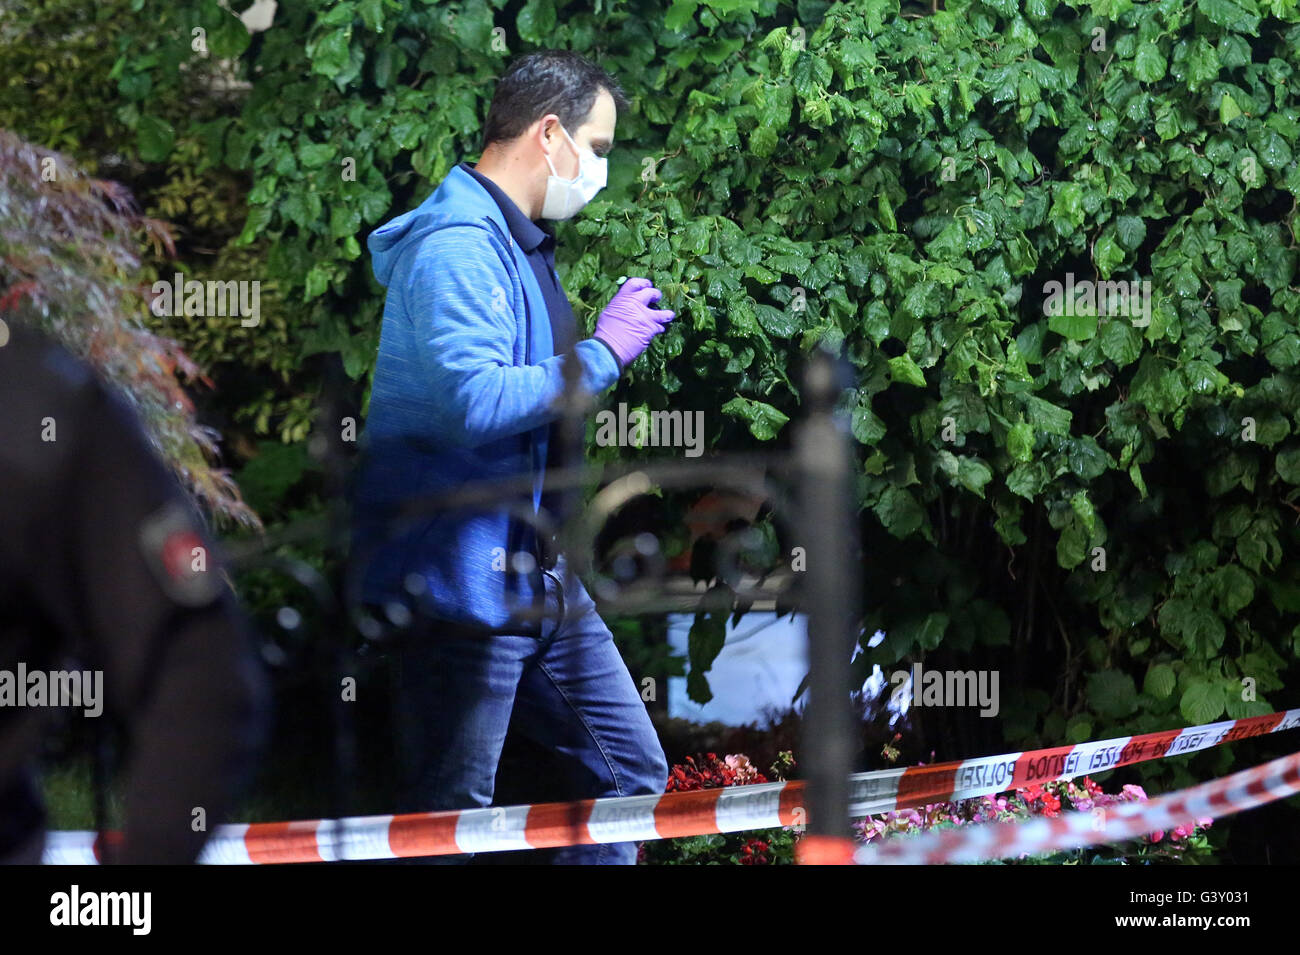 Hamburg-Schnelsen, Germany. 16th June, 2016. Detectives search for clues in front of a house, in which there is - Stock Image